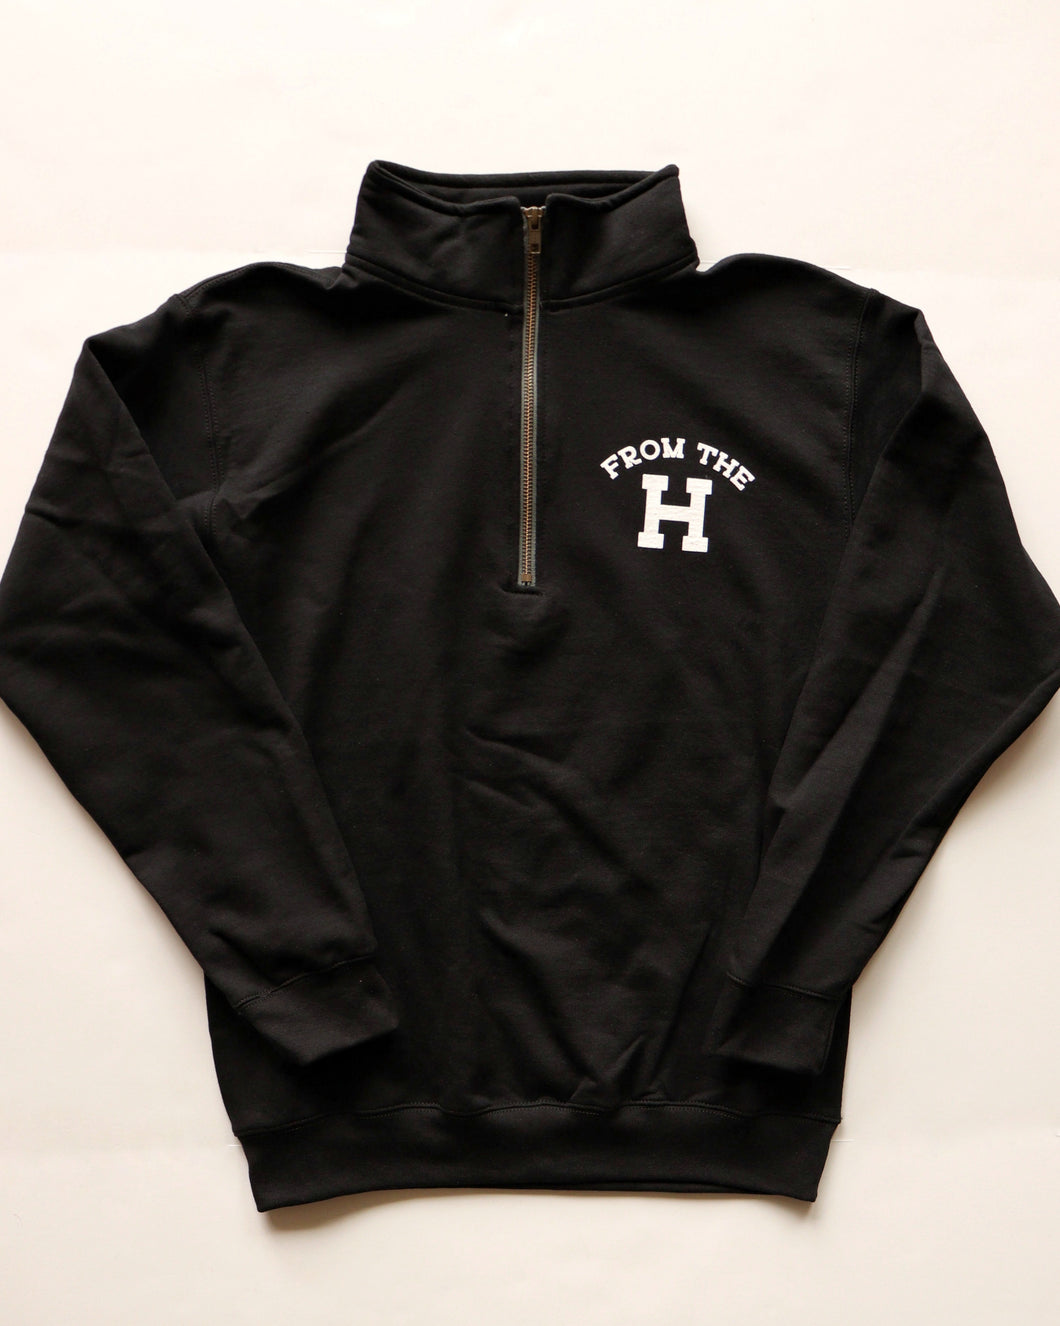 From the H Quarter-zip (Black/White)